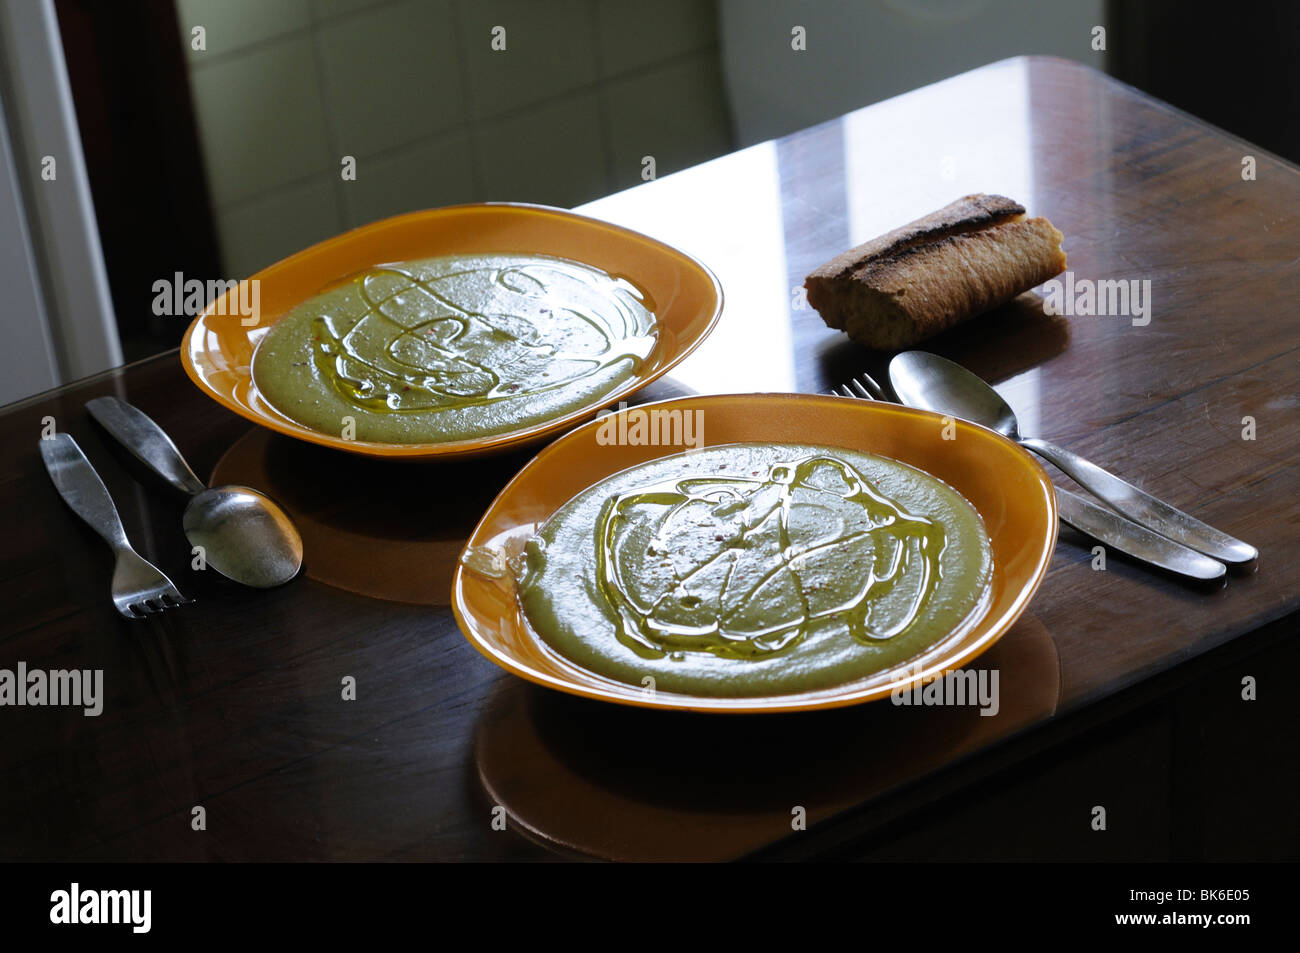 Pureed vegetables dishes on the table Stock Photo